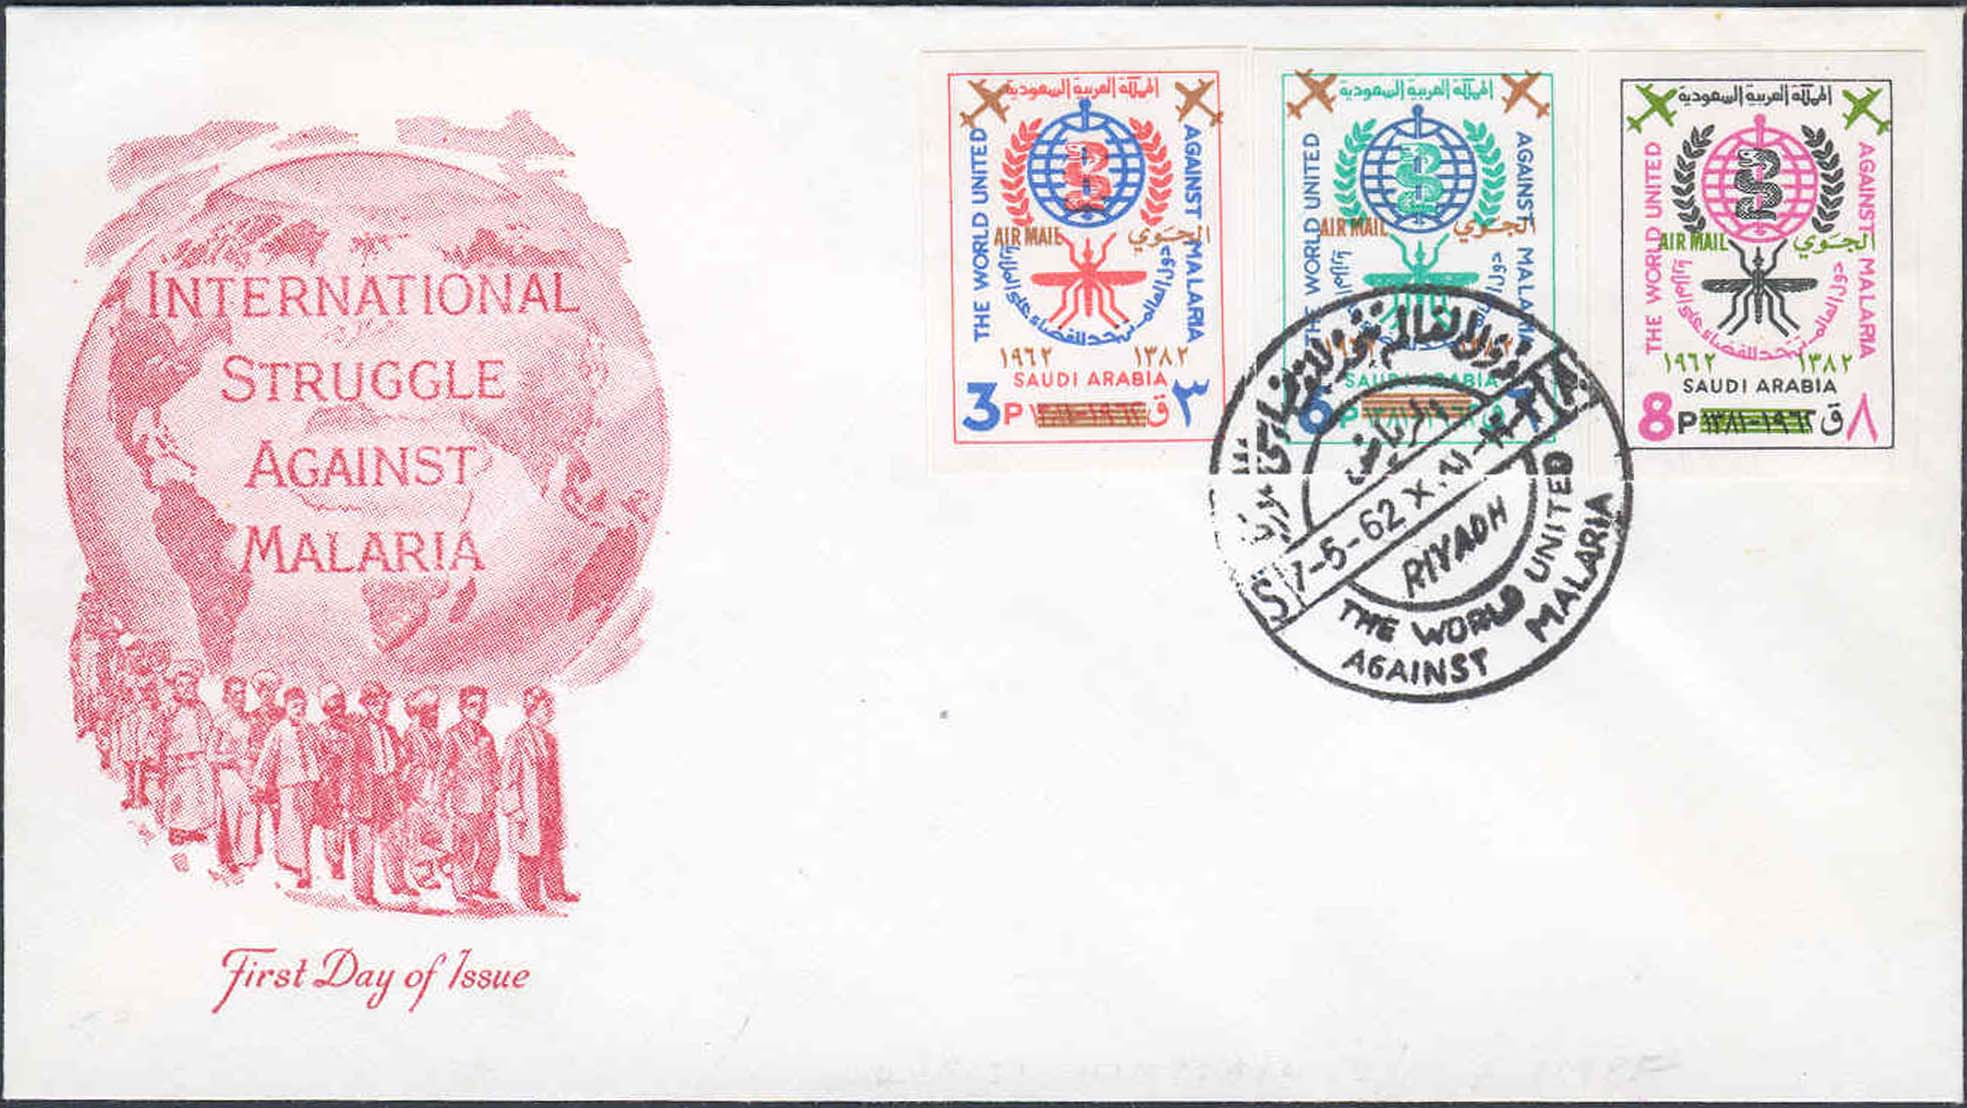 Saudi Arabia Scott 252-254 (with Plane Overprint)<br />(FDC w/ Counterfeit Artmaster Cachet (Red)(Cancellation City: Riyadh))